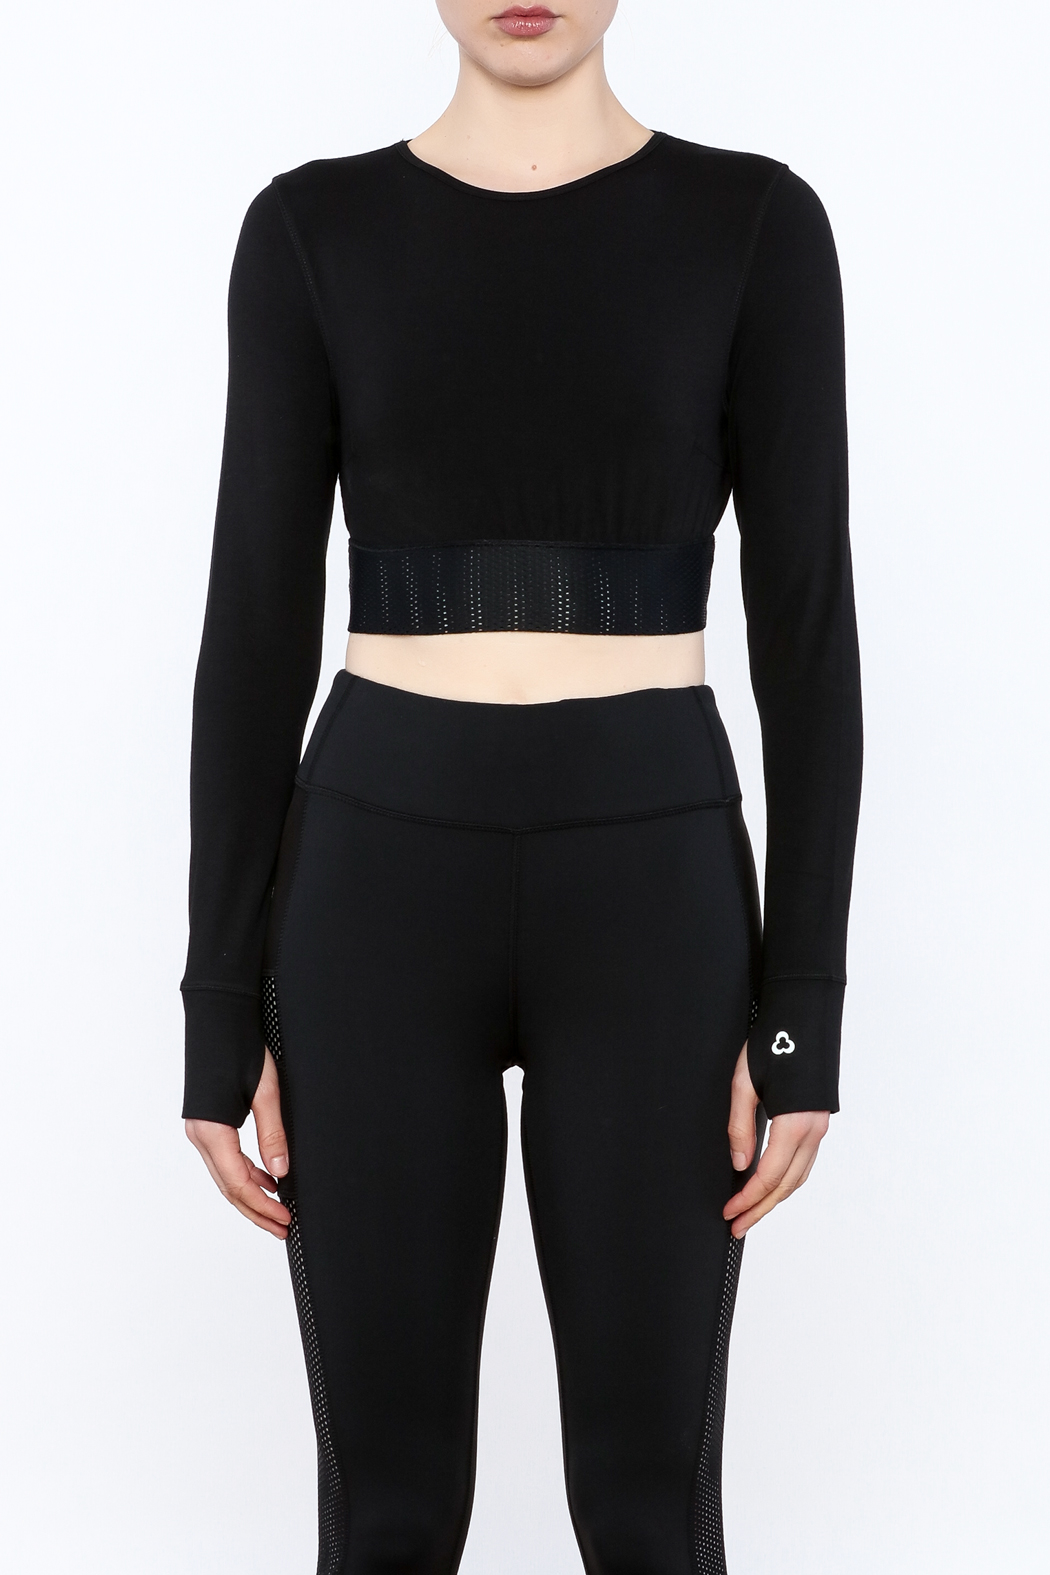 Titika Active Couture Emerson Long Sleeve Crop Top - Front Full Image